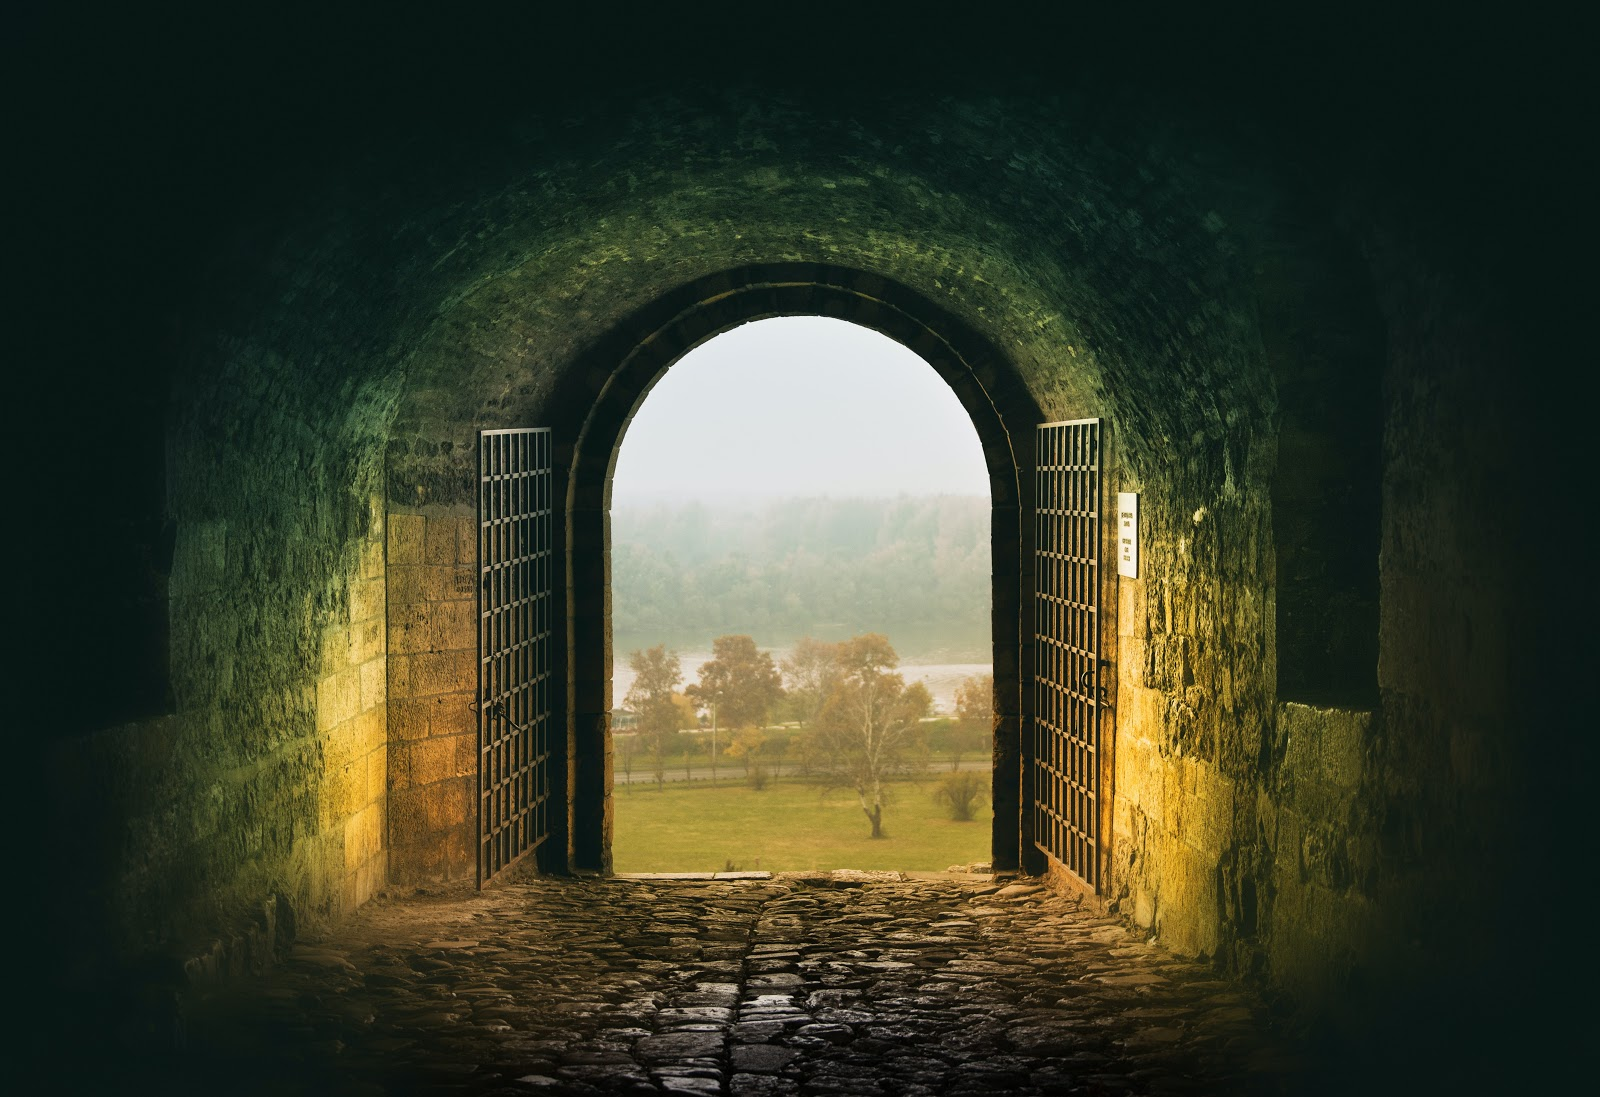 Cover Image - Exit gate